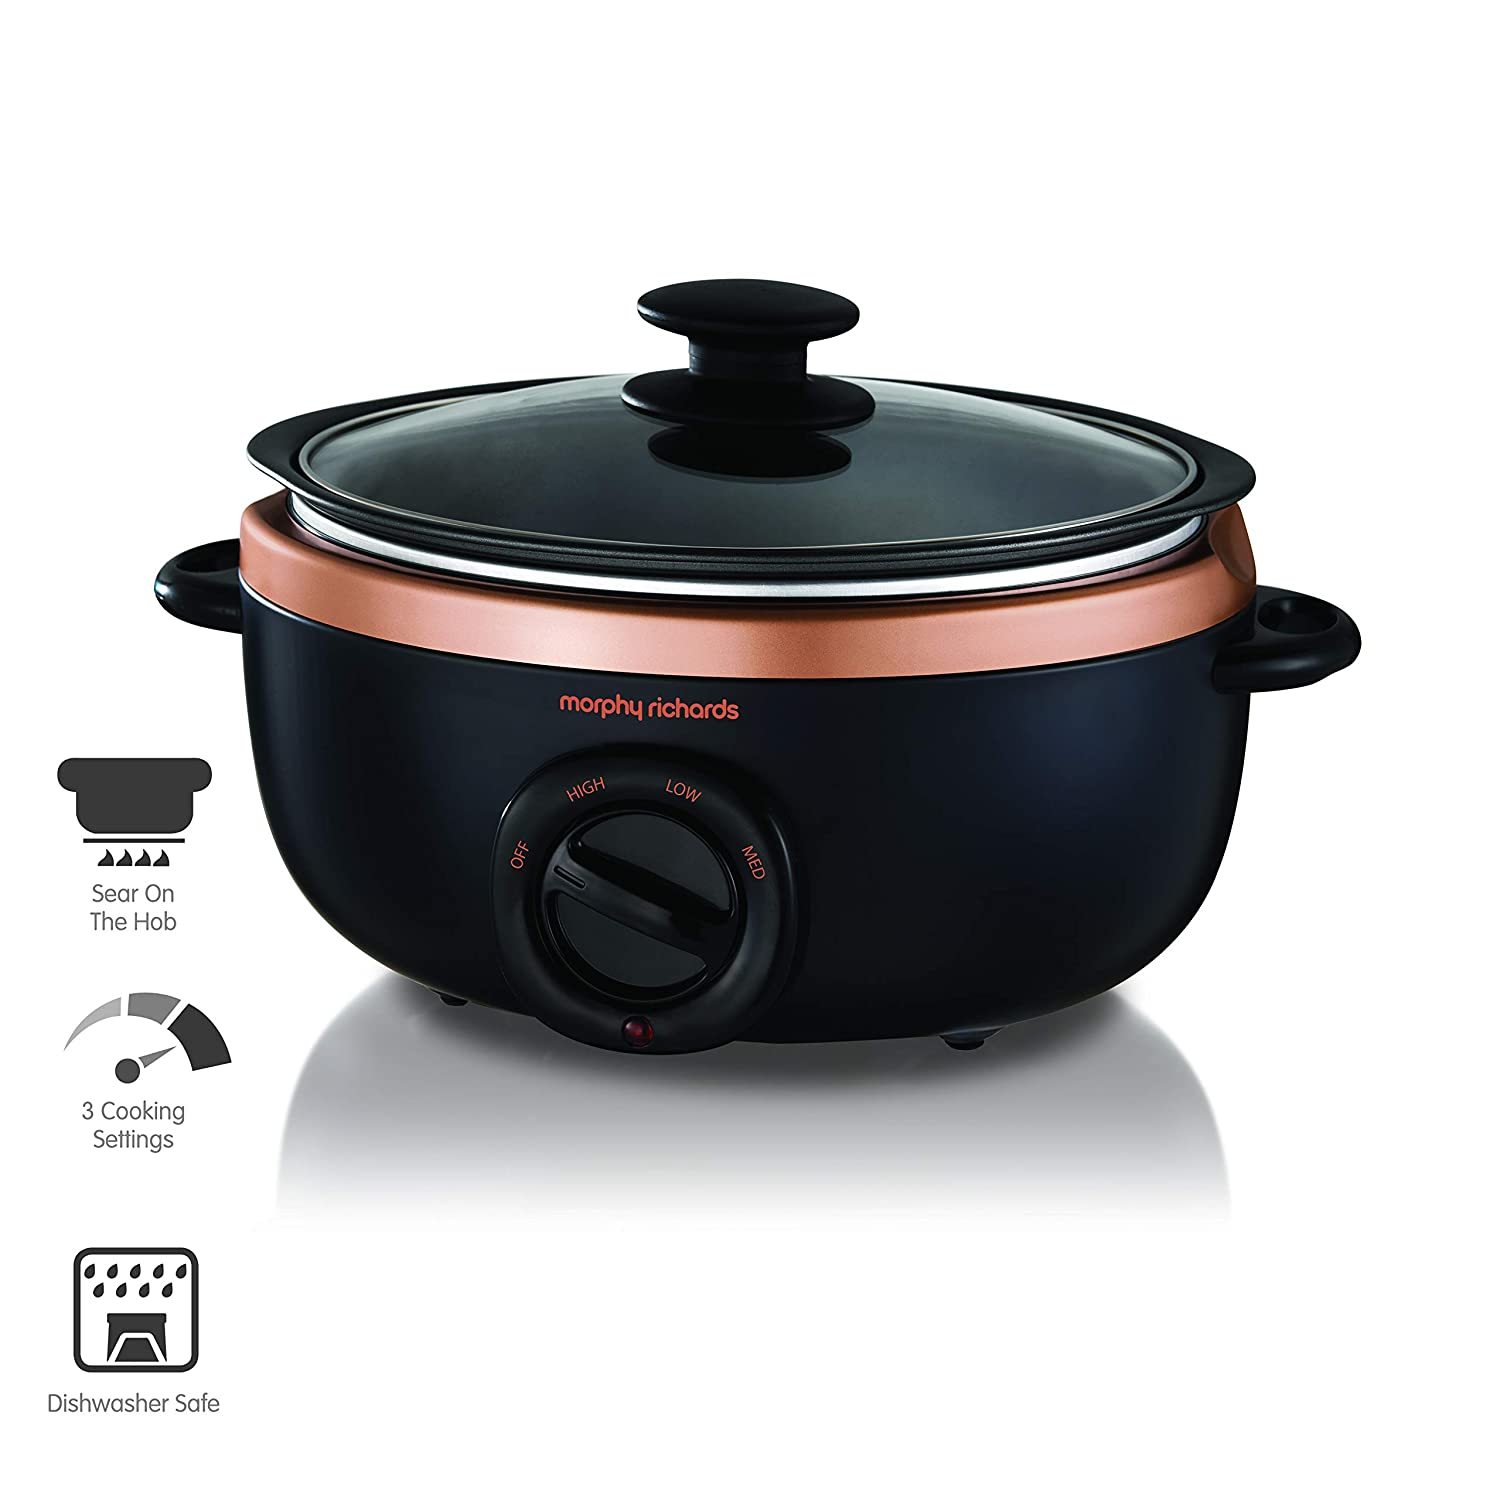 Morphy Richards Sear and Stew Slow Cooker 460016 Black and Rose Gold